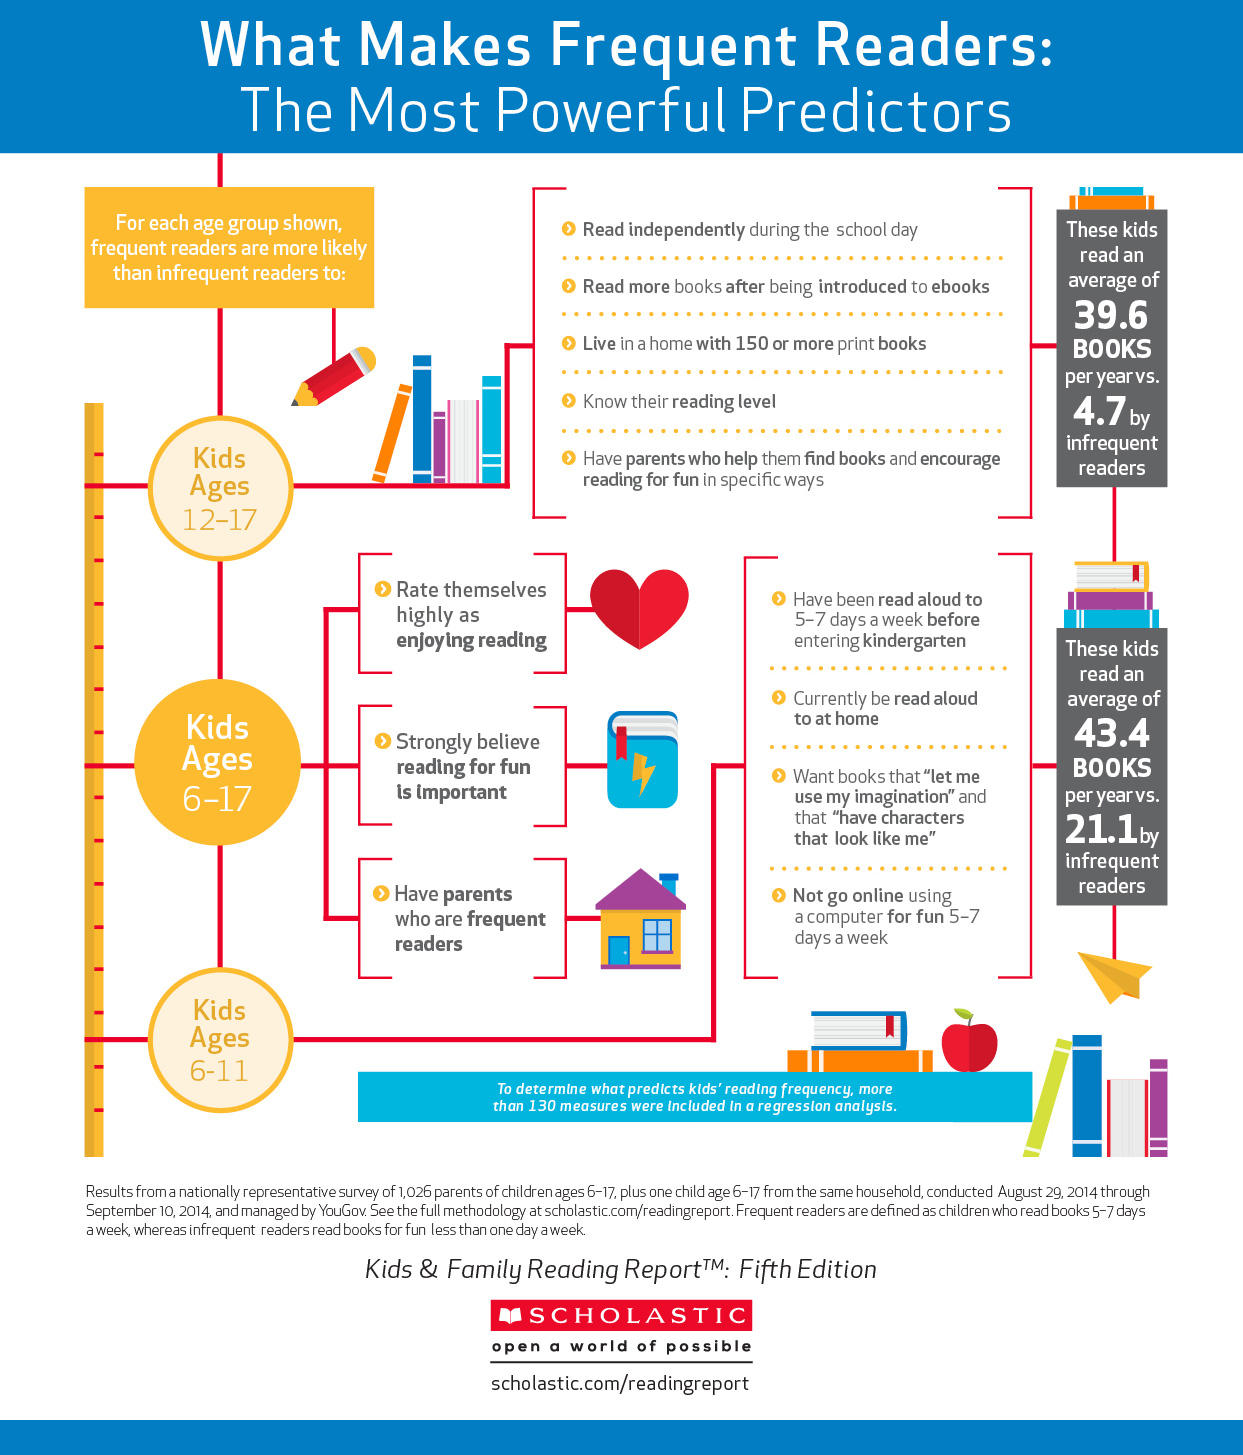 Via Scholastic's 2015 Kids and Family Reading Report.